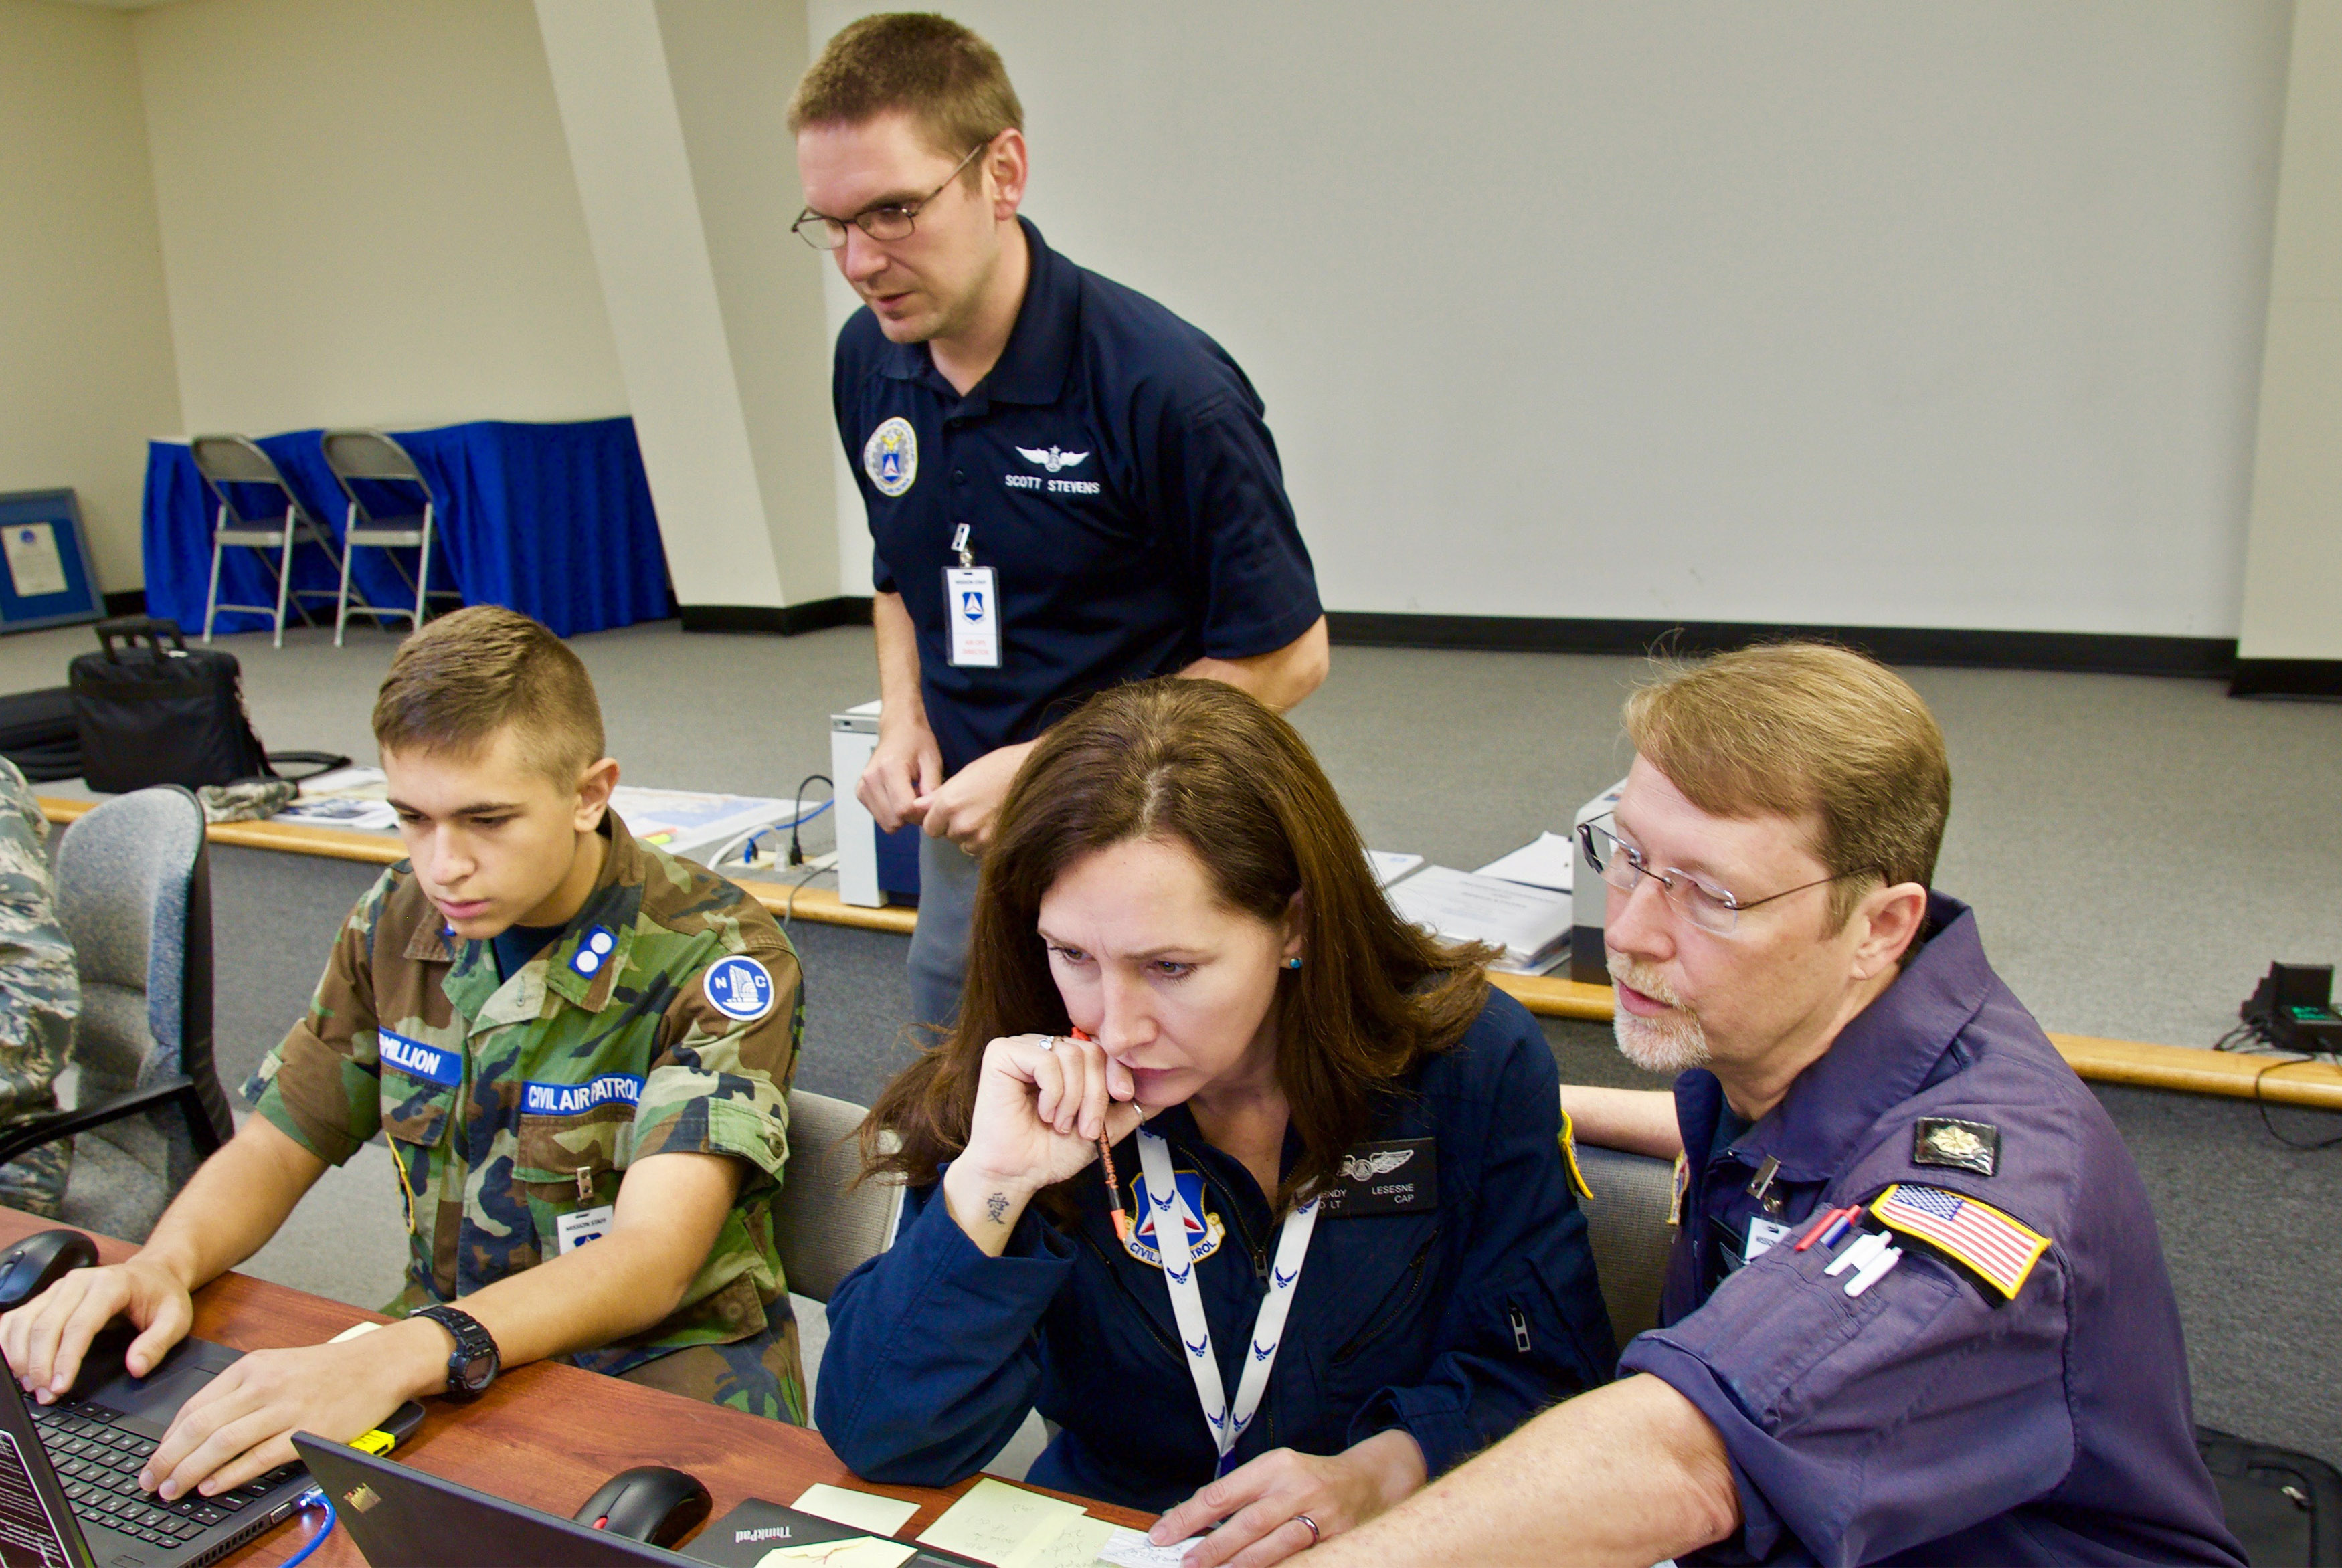 Civil Air Patrol members Isaac Vermillion, Scott Stevens, Wendy Lesesne, and Will Windham (from left to right) work through the flight planning process in the wake of Hurricane Florence at the North Carolina Wing mission base in Burlington. Photo courtesy of the Civil Air Patrol.